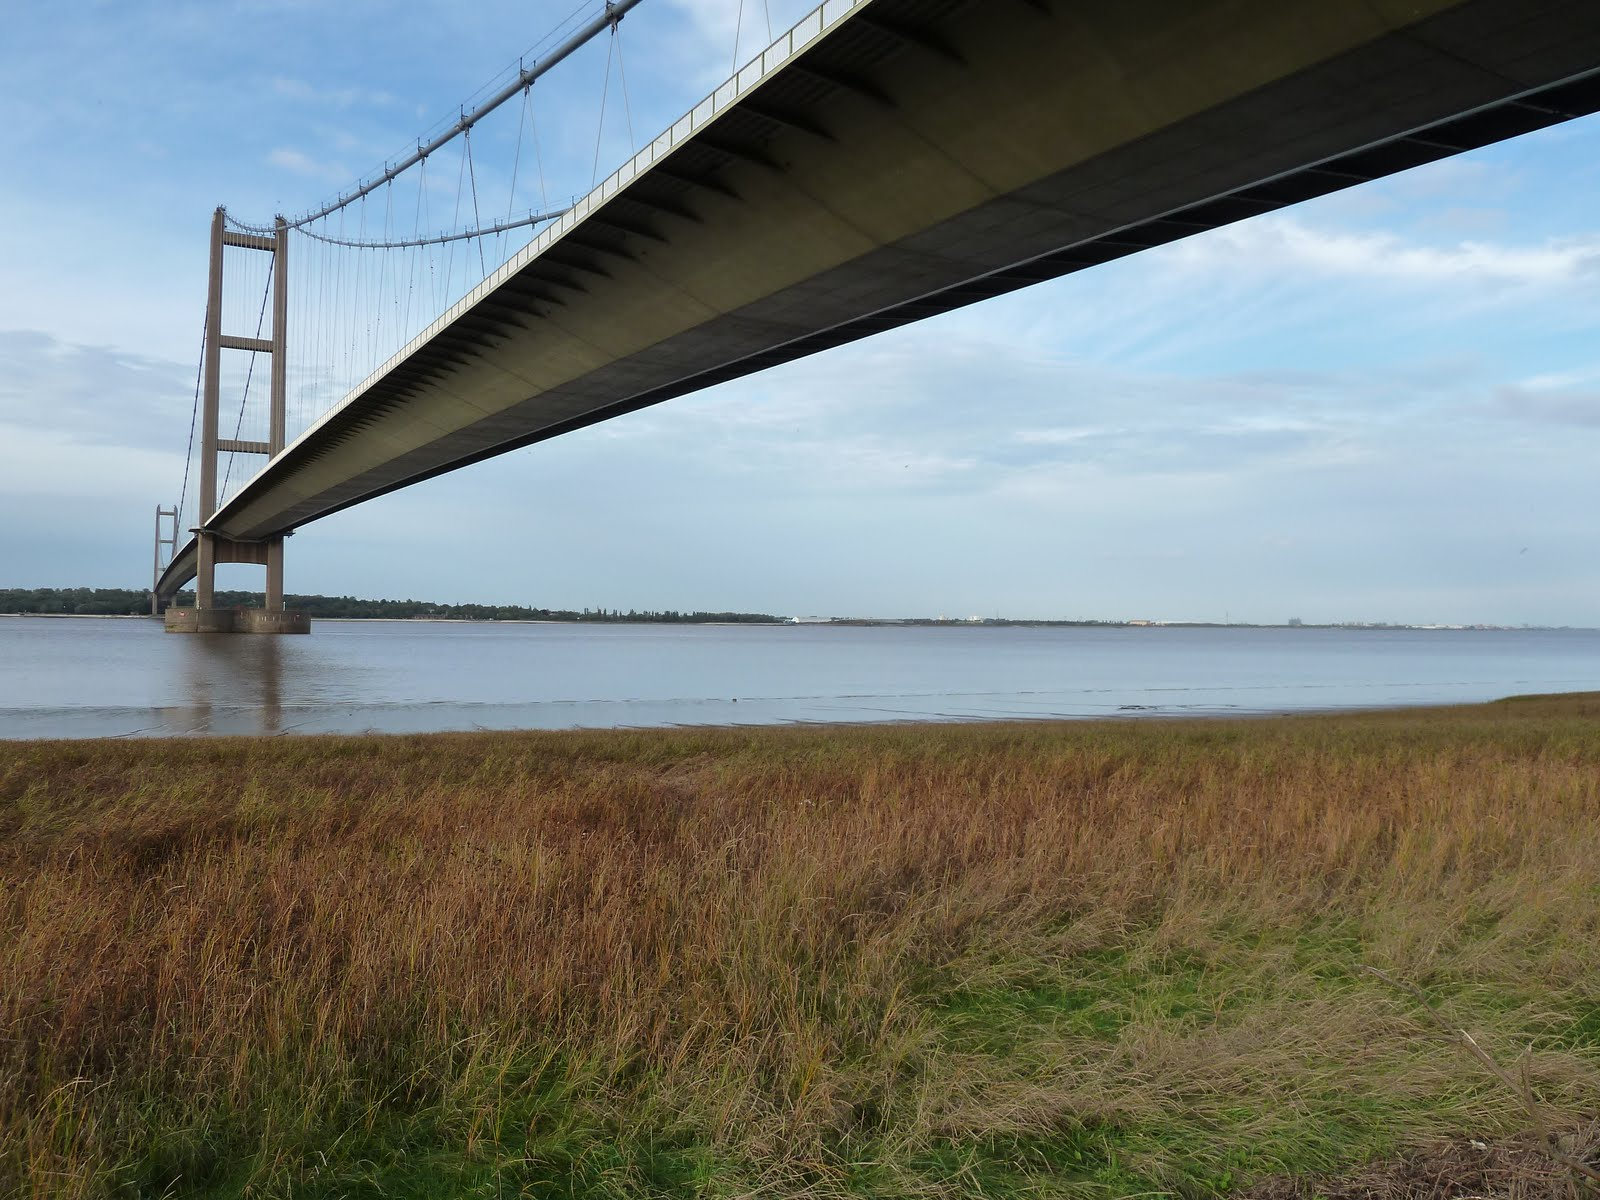 from the Severn Bridge and